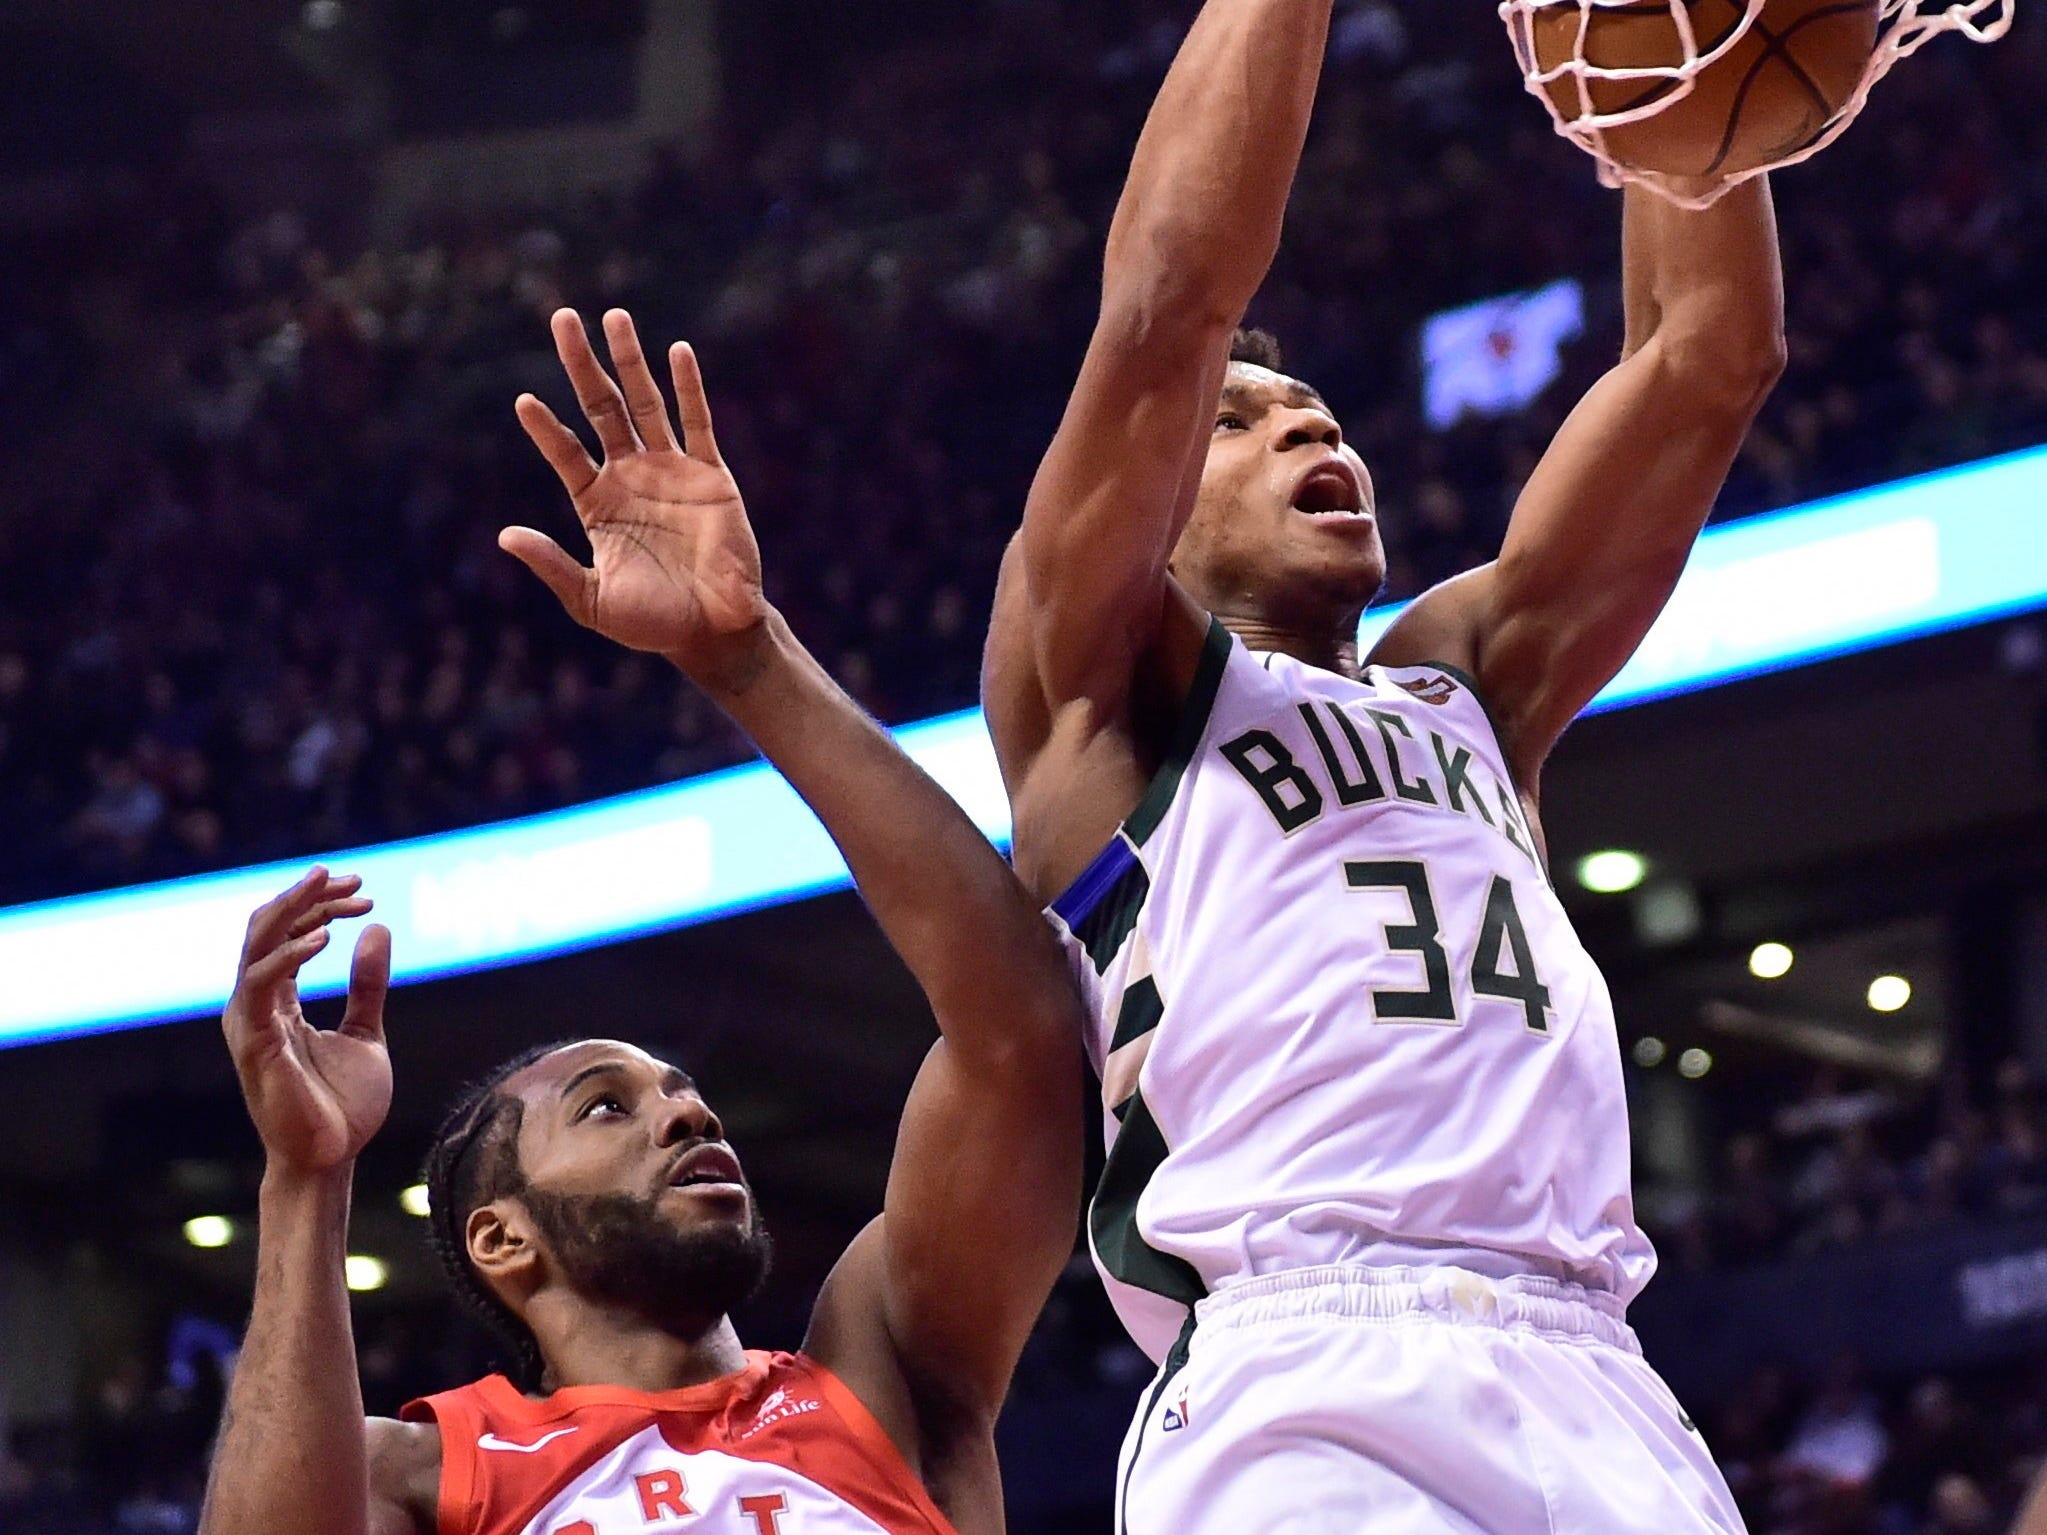 Bucks forward Giannis Antetokounmpo powers home a two-handed dunk against fellow all-star starter Kawhi Leonard of the Raptors during the first-half Thursday night in Toronto.